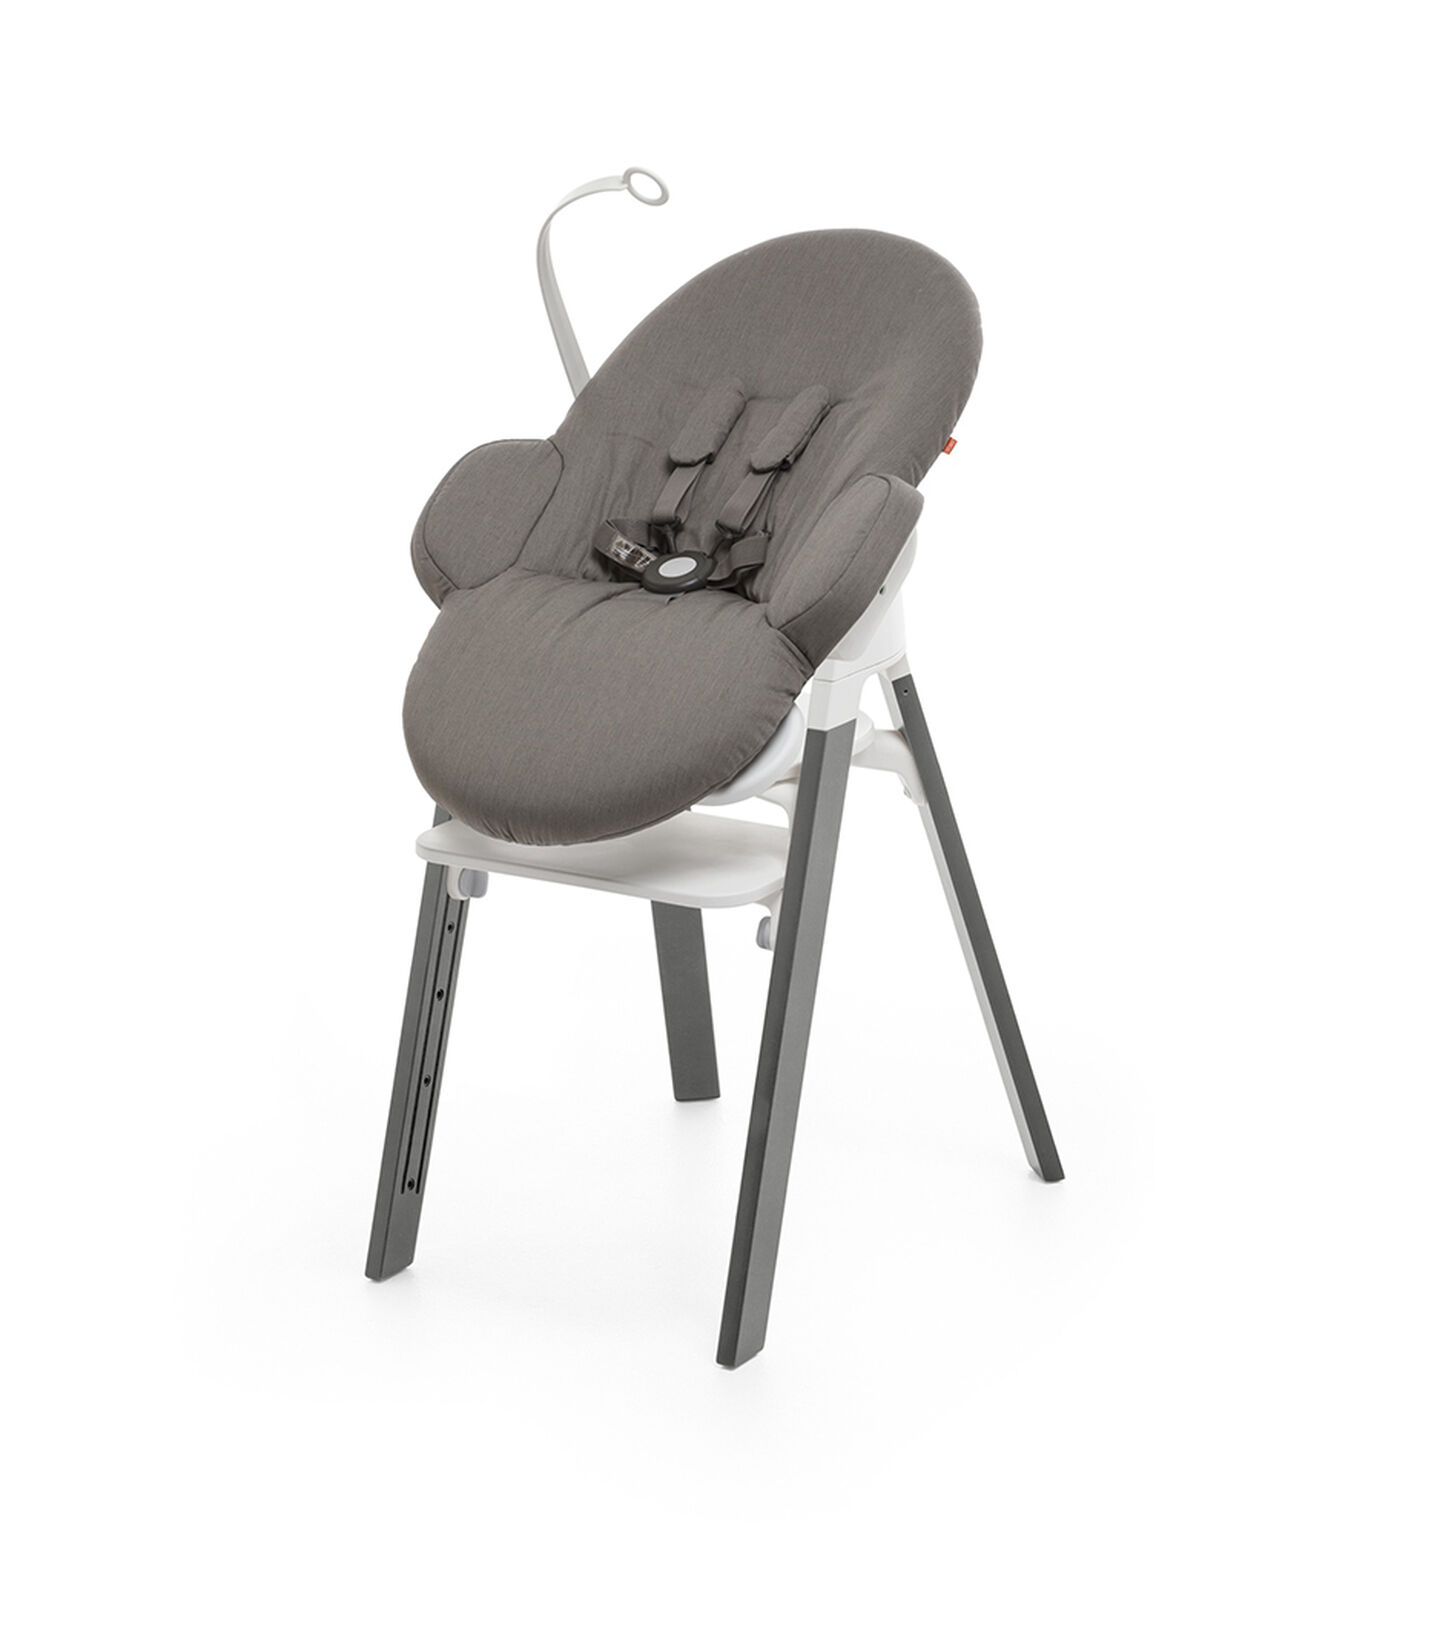 Bouncer, Greige. Mounted on Stokke Steps highchair.